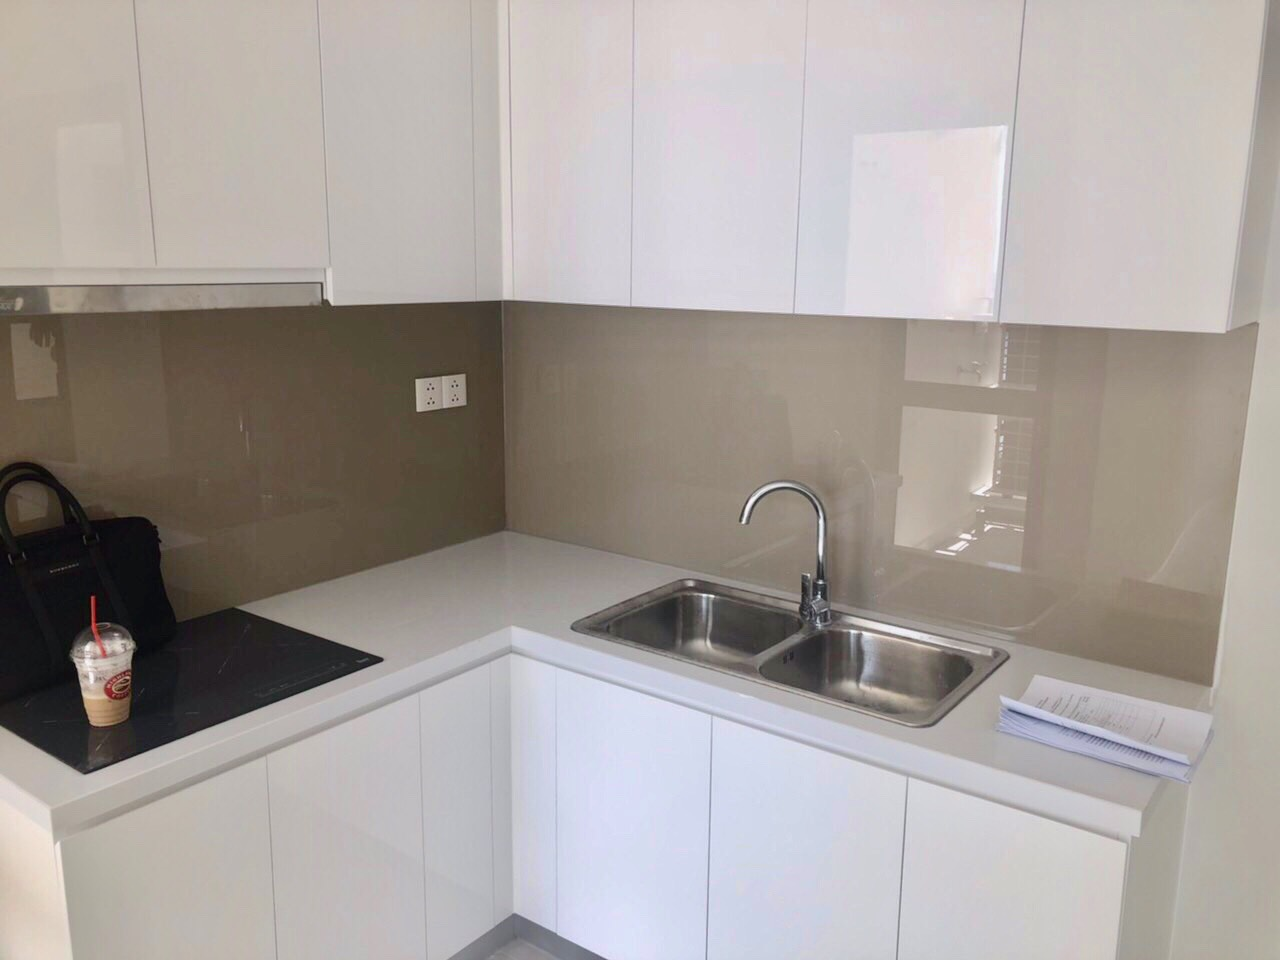 Apartment for rent D229007 (6)